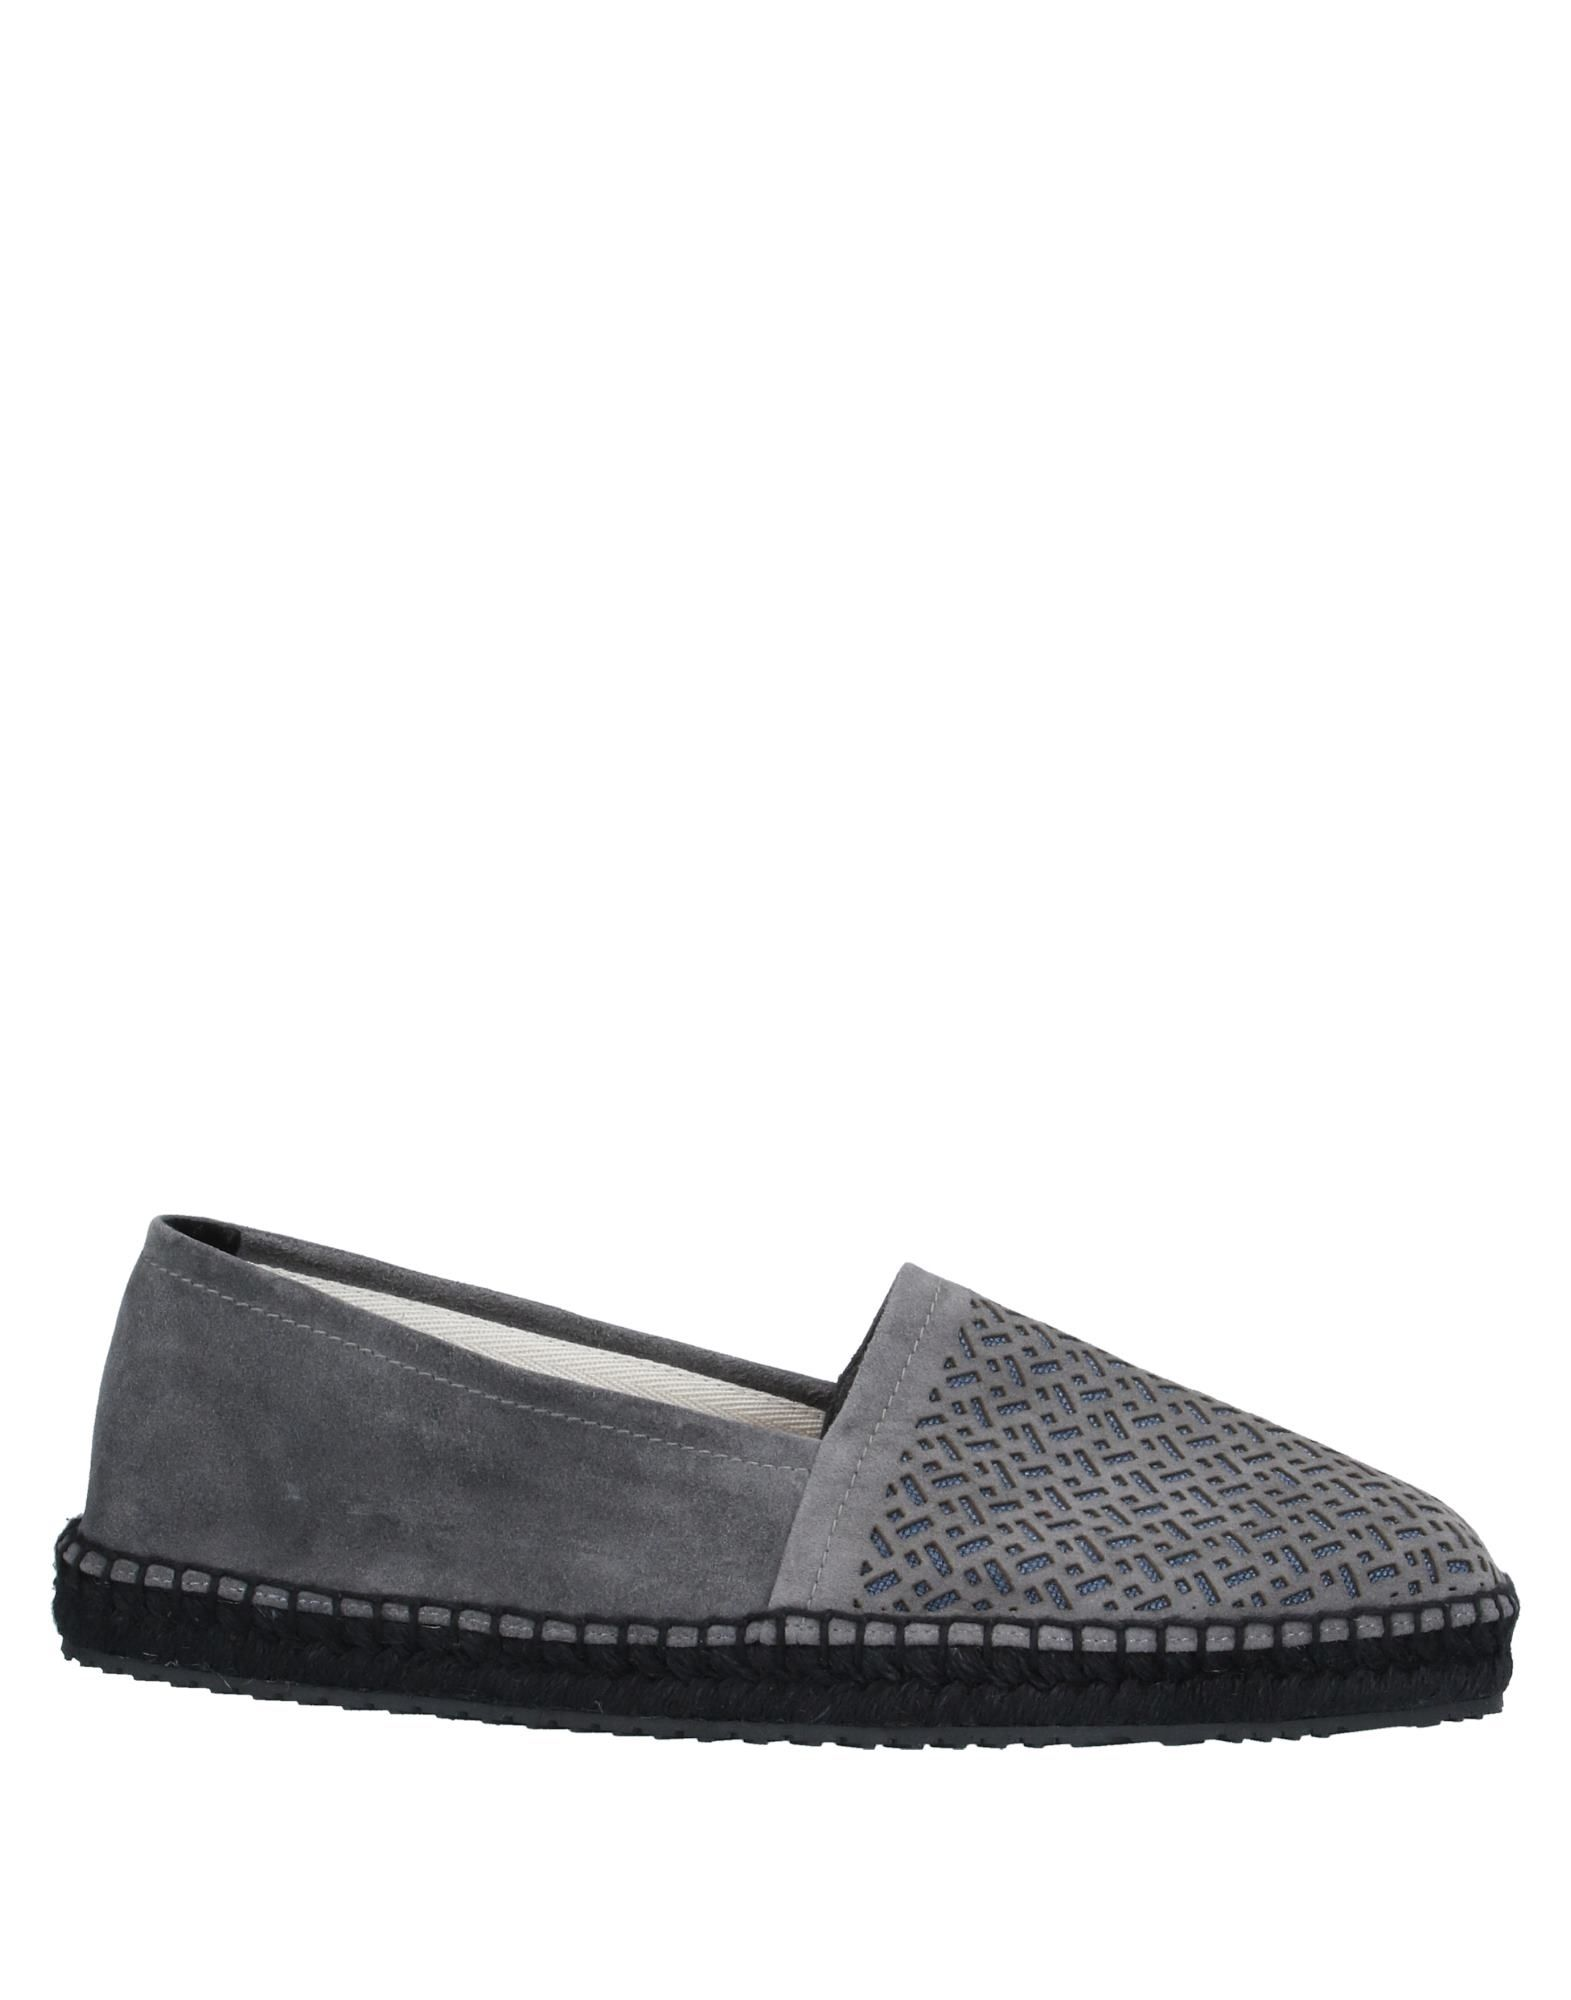 GIORGIO ARMANI Espadrilles. suede effect, no appliqués, two-tone, round toeline, flat, leather lining, rubber cleated sole, contains non-textile parts of animal origin. 100% Calfskin, Linen